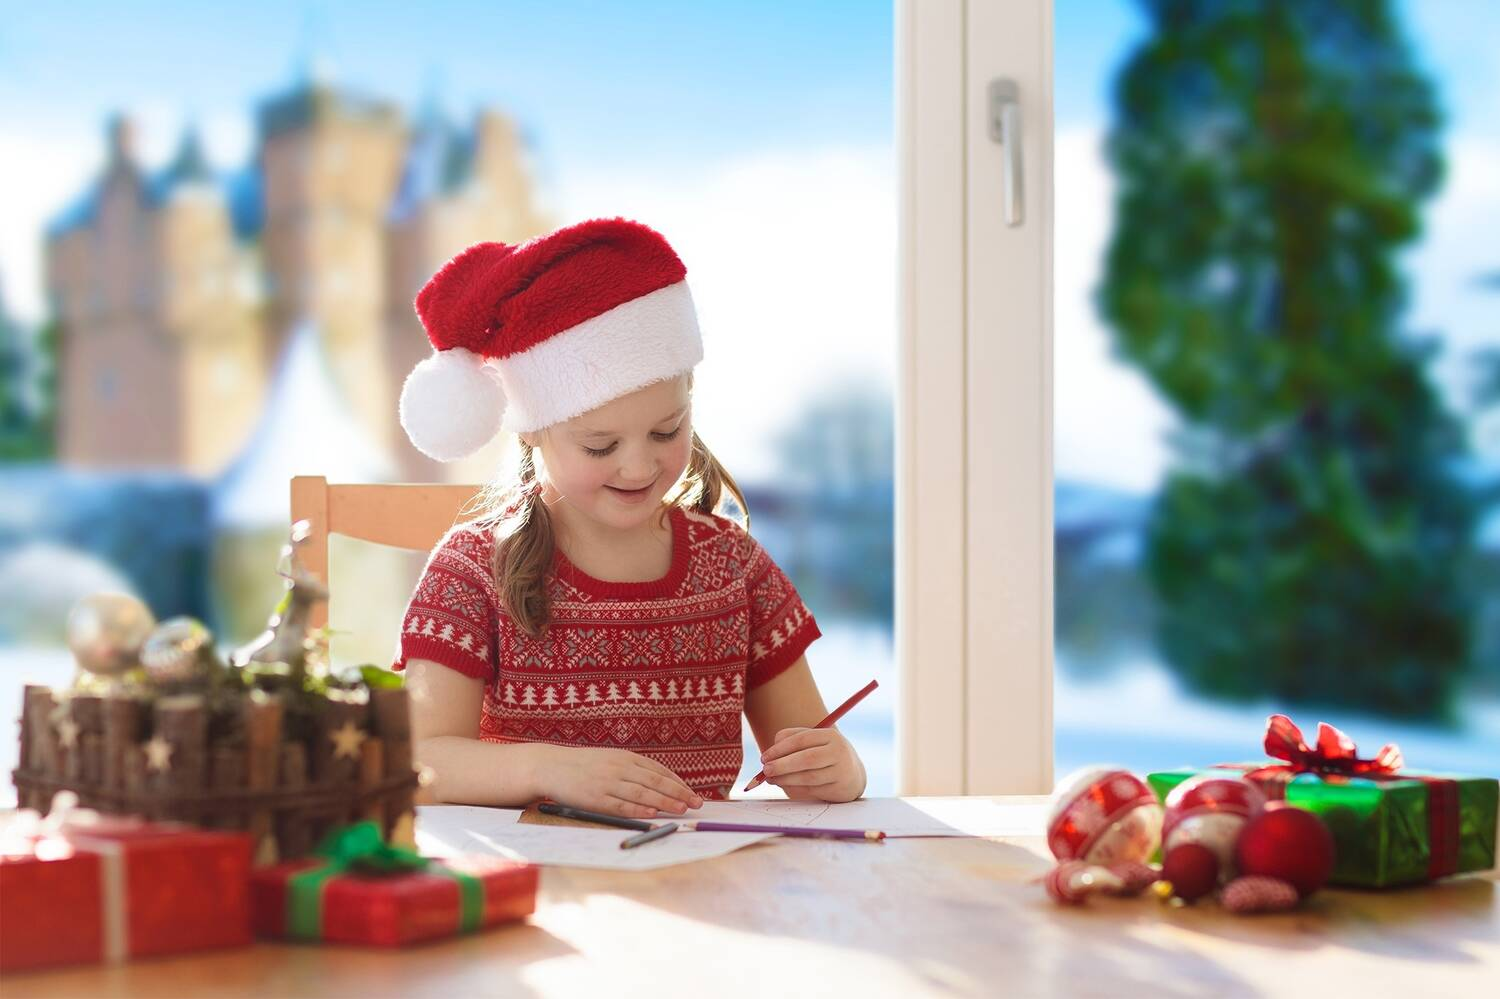 A young girl, wearing a Santa hat, sits at a white table, writing. Craigievar Castle and a shaped yew tree can be seen through the window in the background.